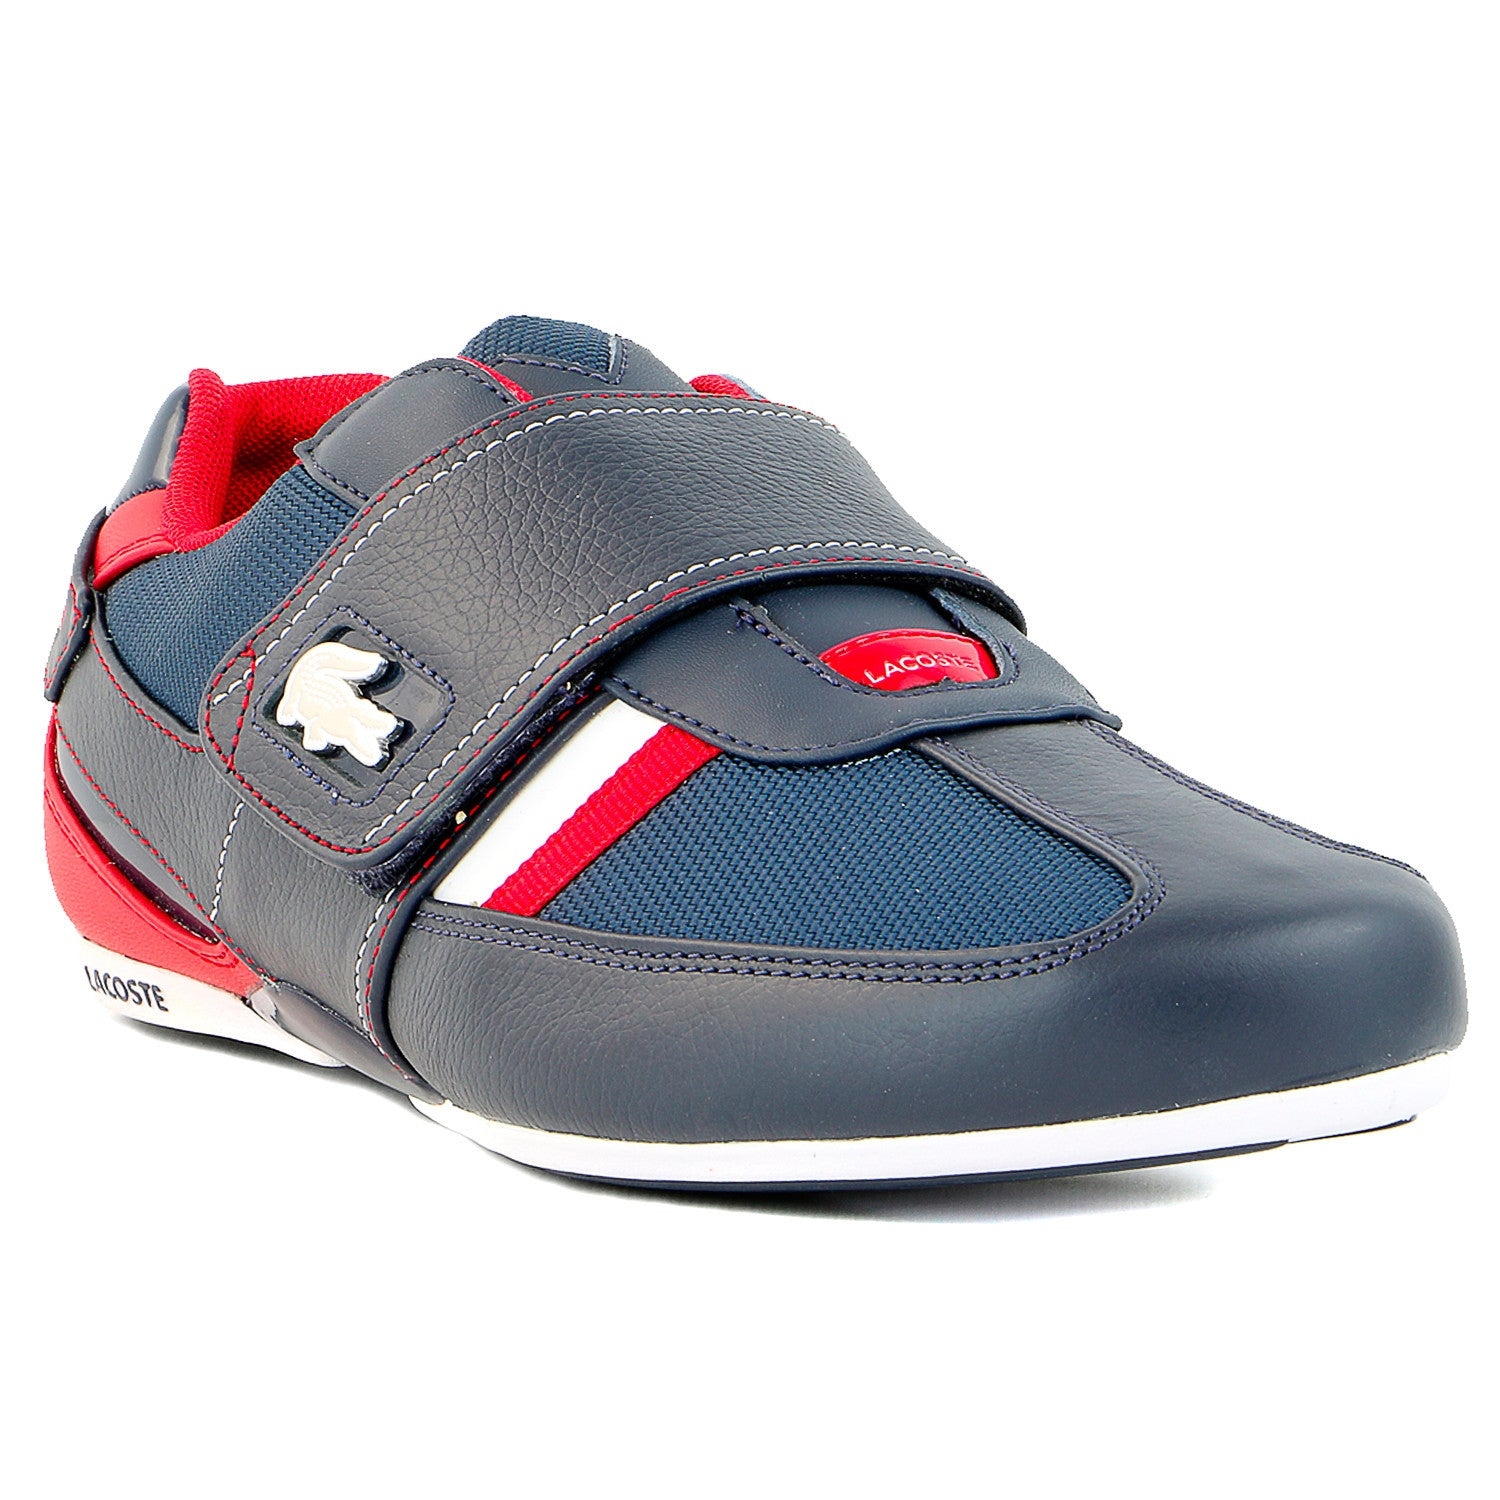 a69406a68df958 Lacoste Shoes Protected Bst Sneaker 28Spm0177-1P4 - CONVOLVULUS VITAMI -  Shoplifestyle